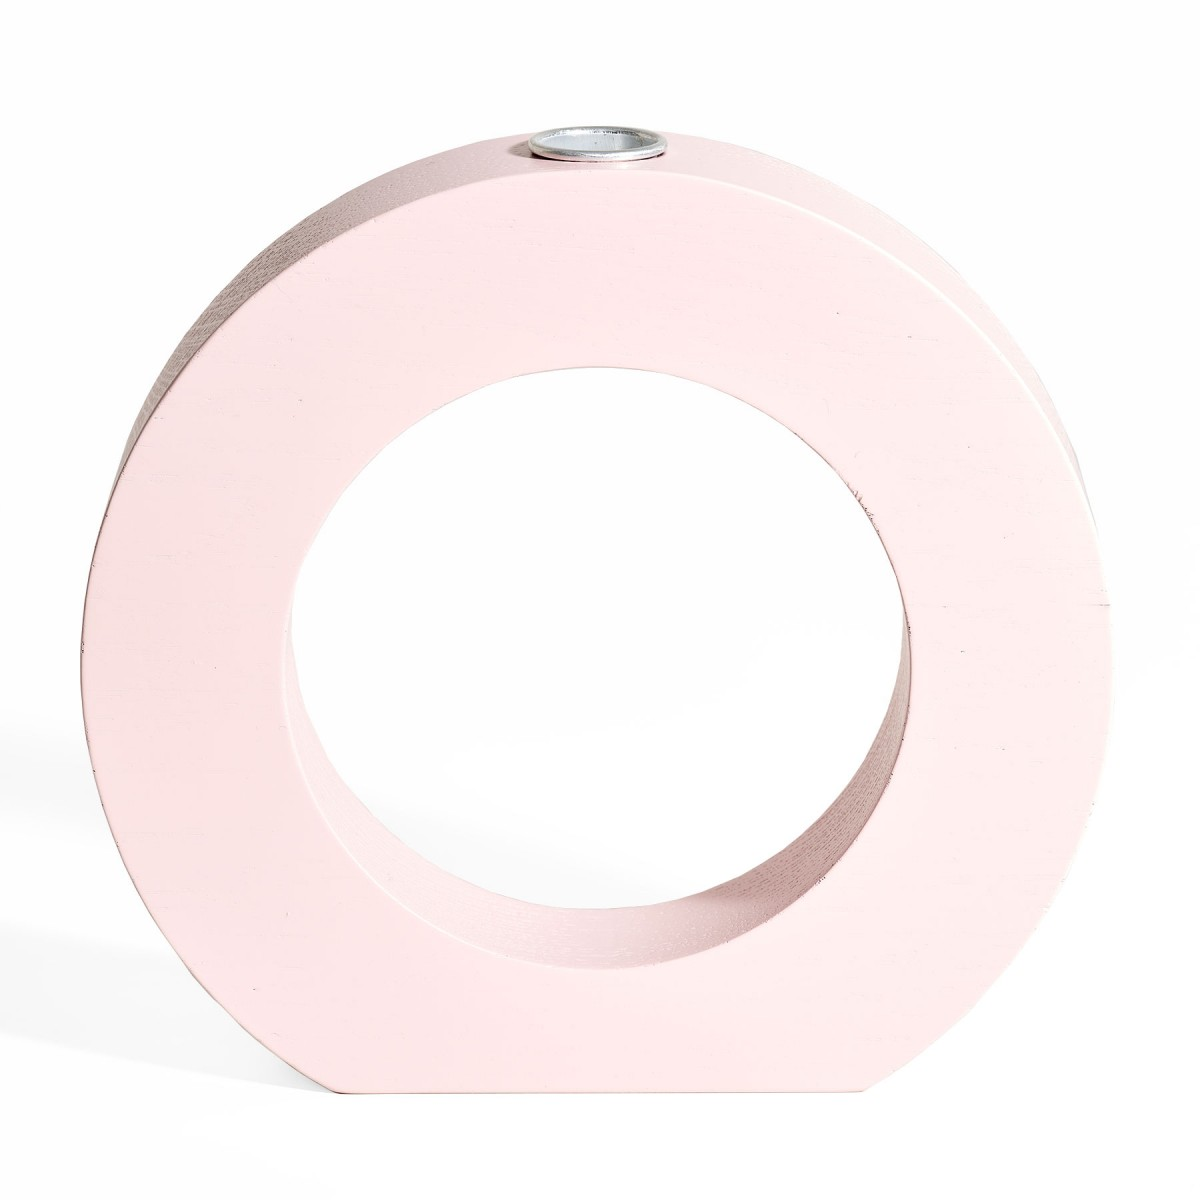 mused - CURVE O - light pink